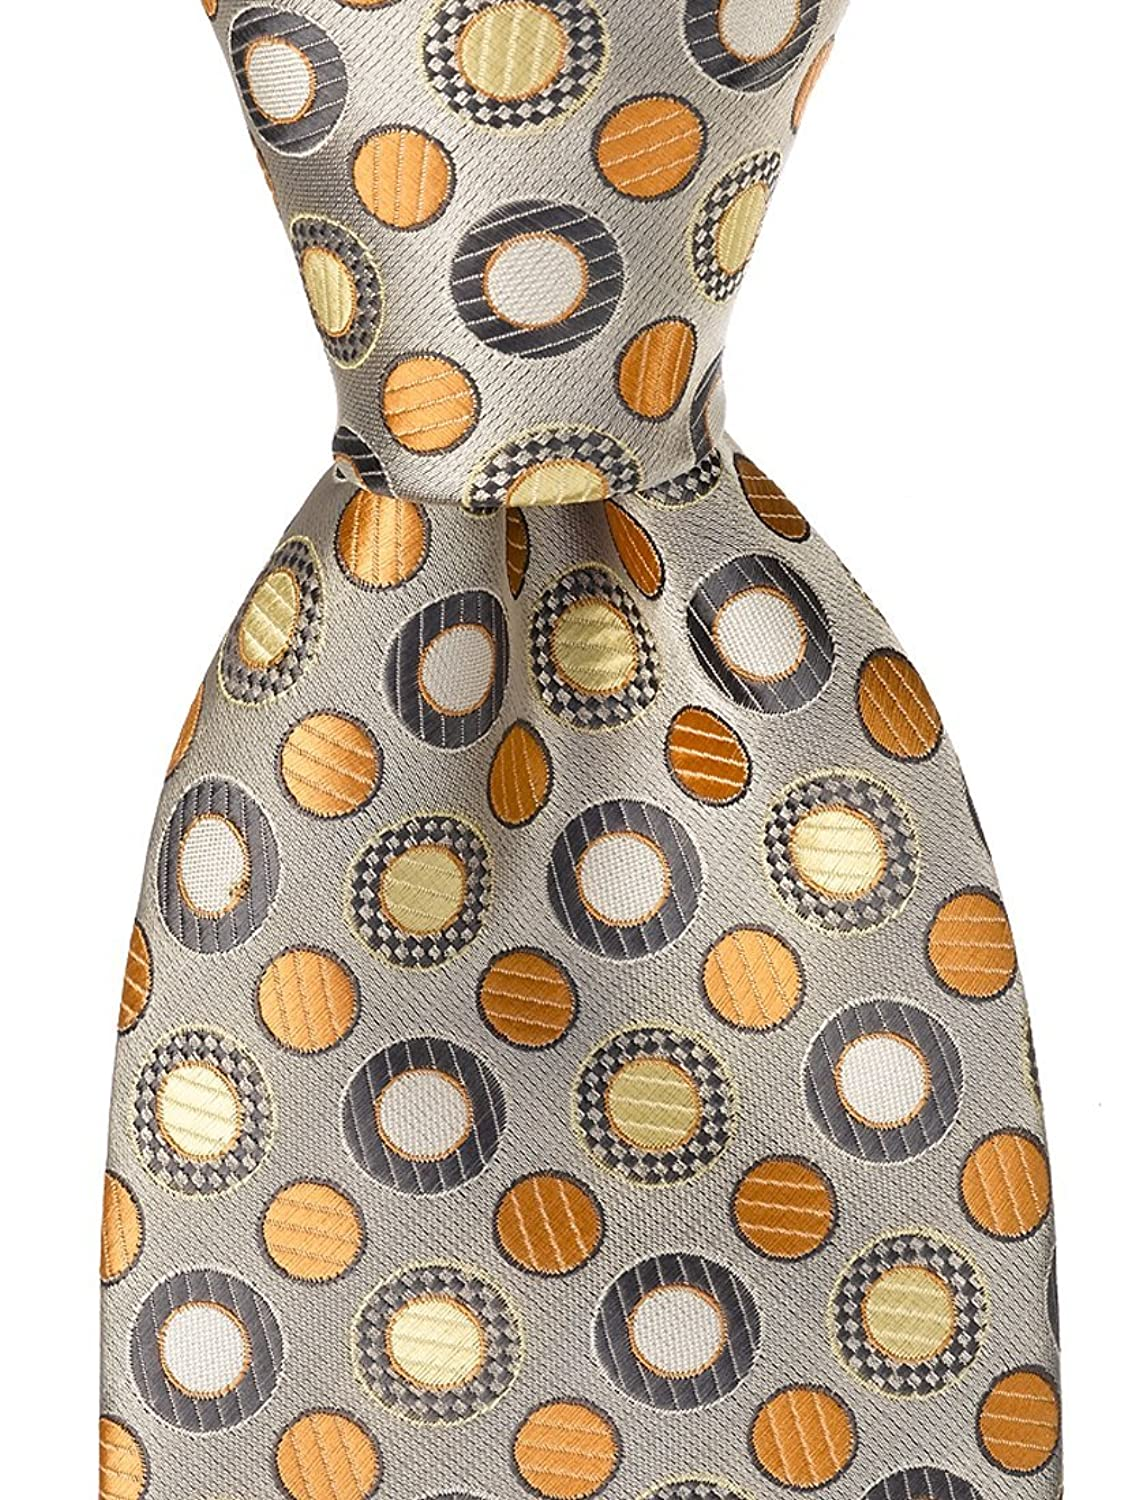 1960s – 70s Men's Ties | Skinny Ties, Slim Ties Scott Allan Mens Polka Dot Necktie - Silver $11.99 AT vintagedancer.com